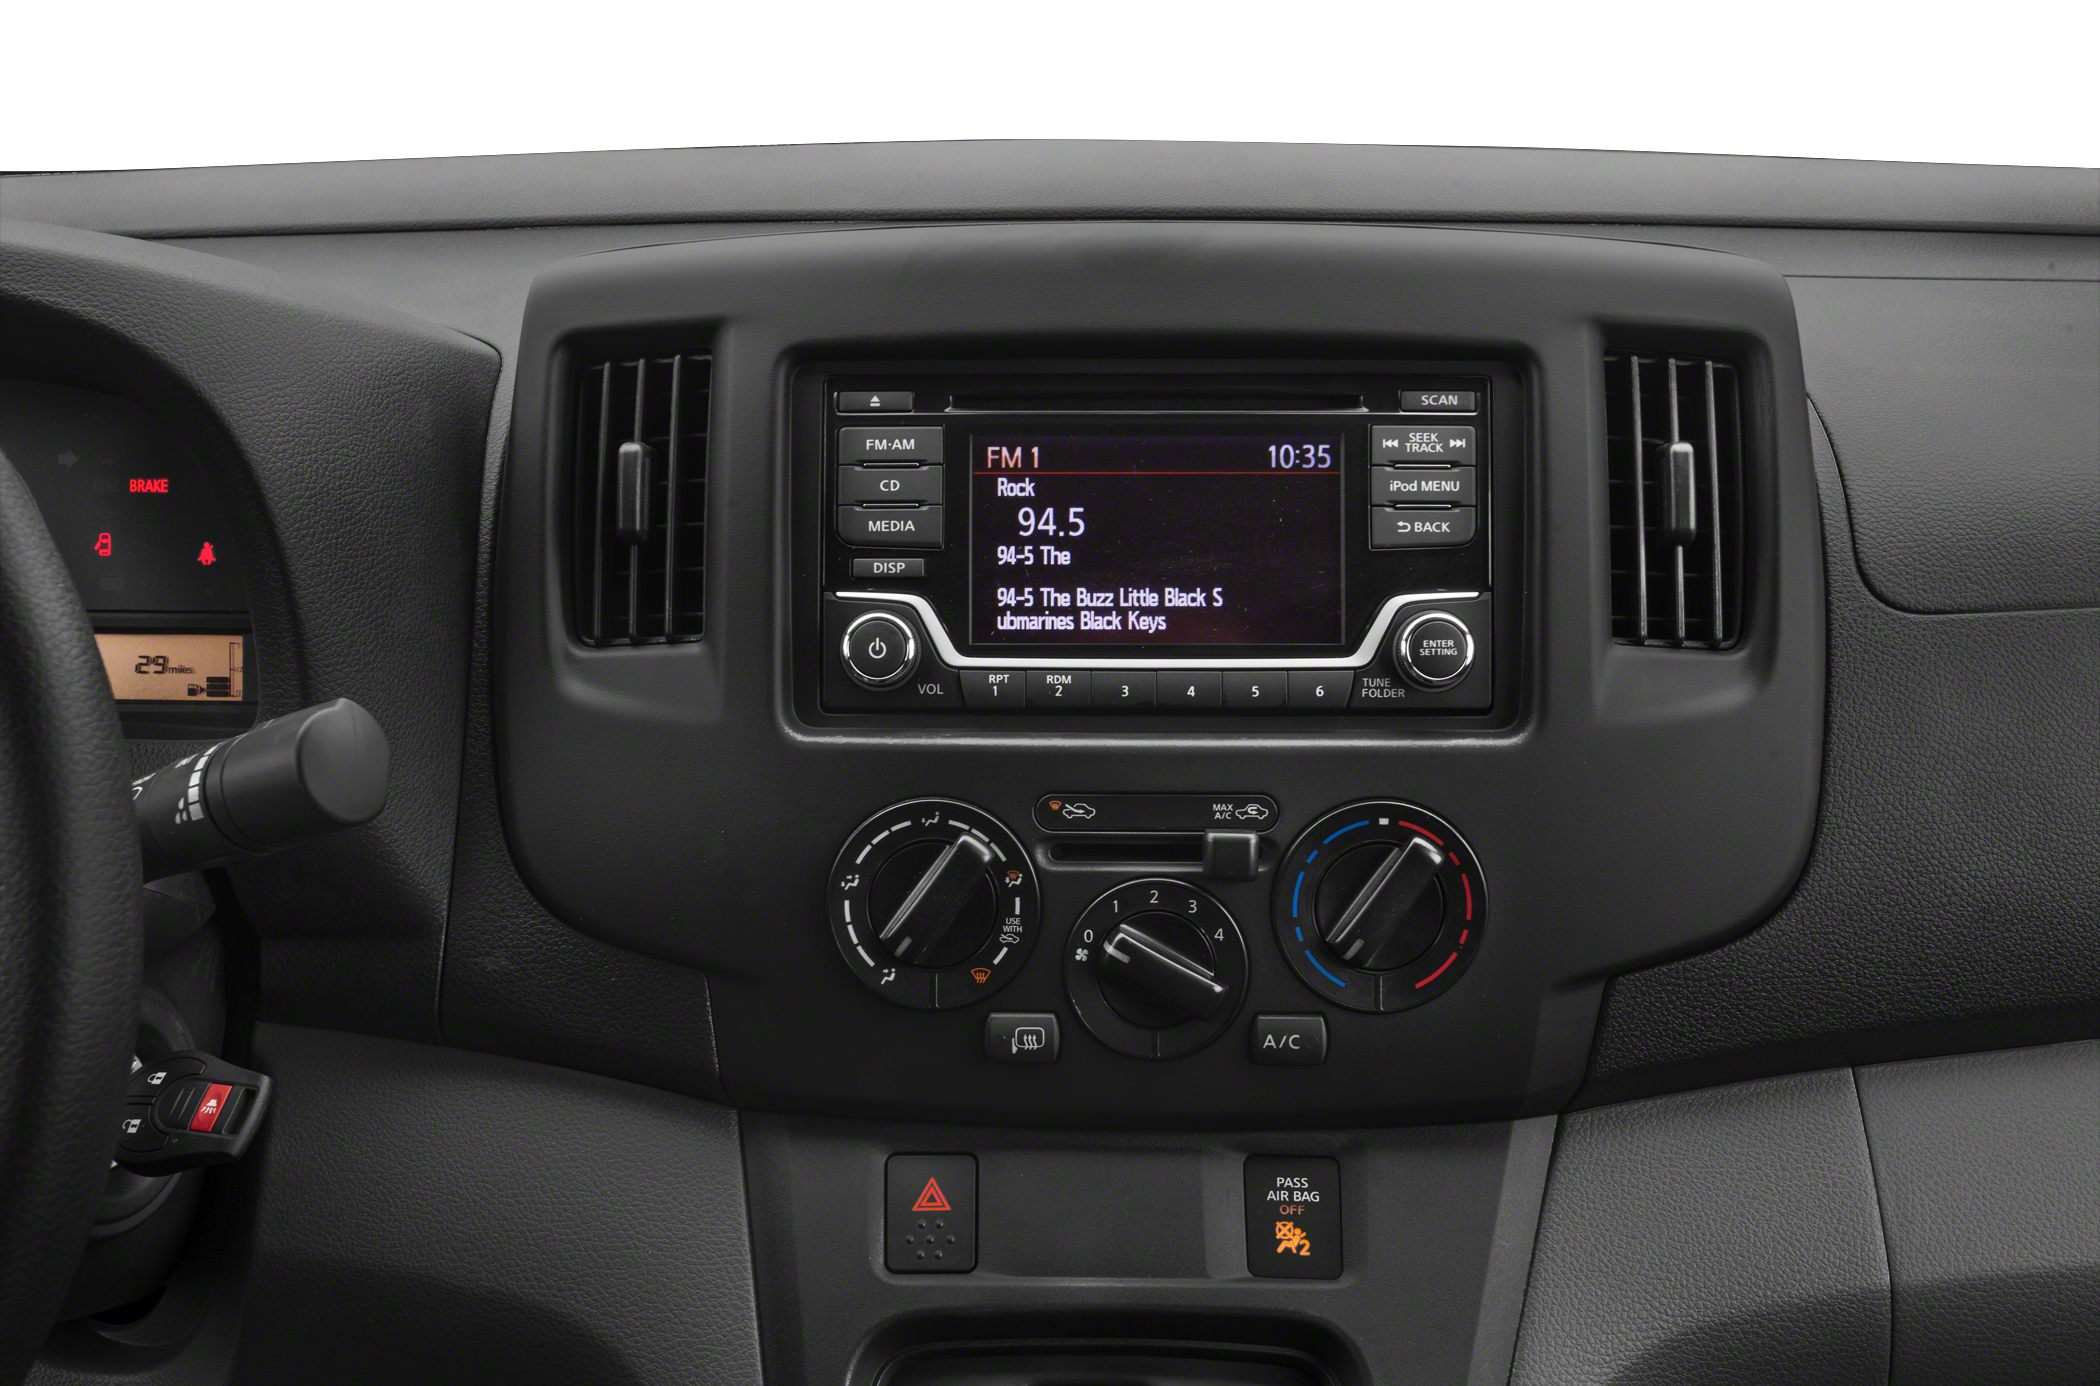 2018 Nissan NV200 Pictures & Photos - CarsDirect